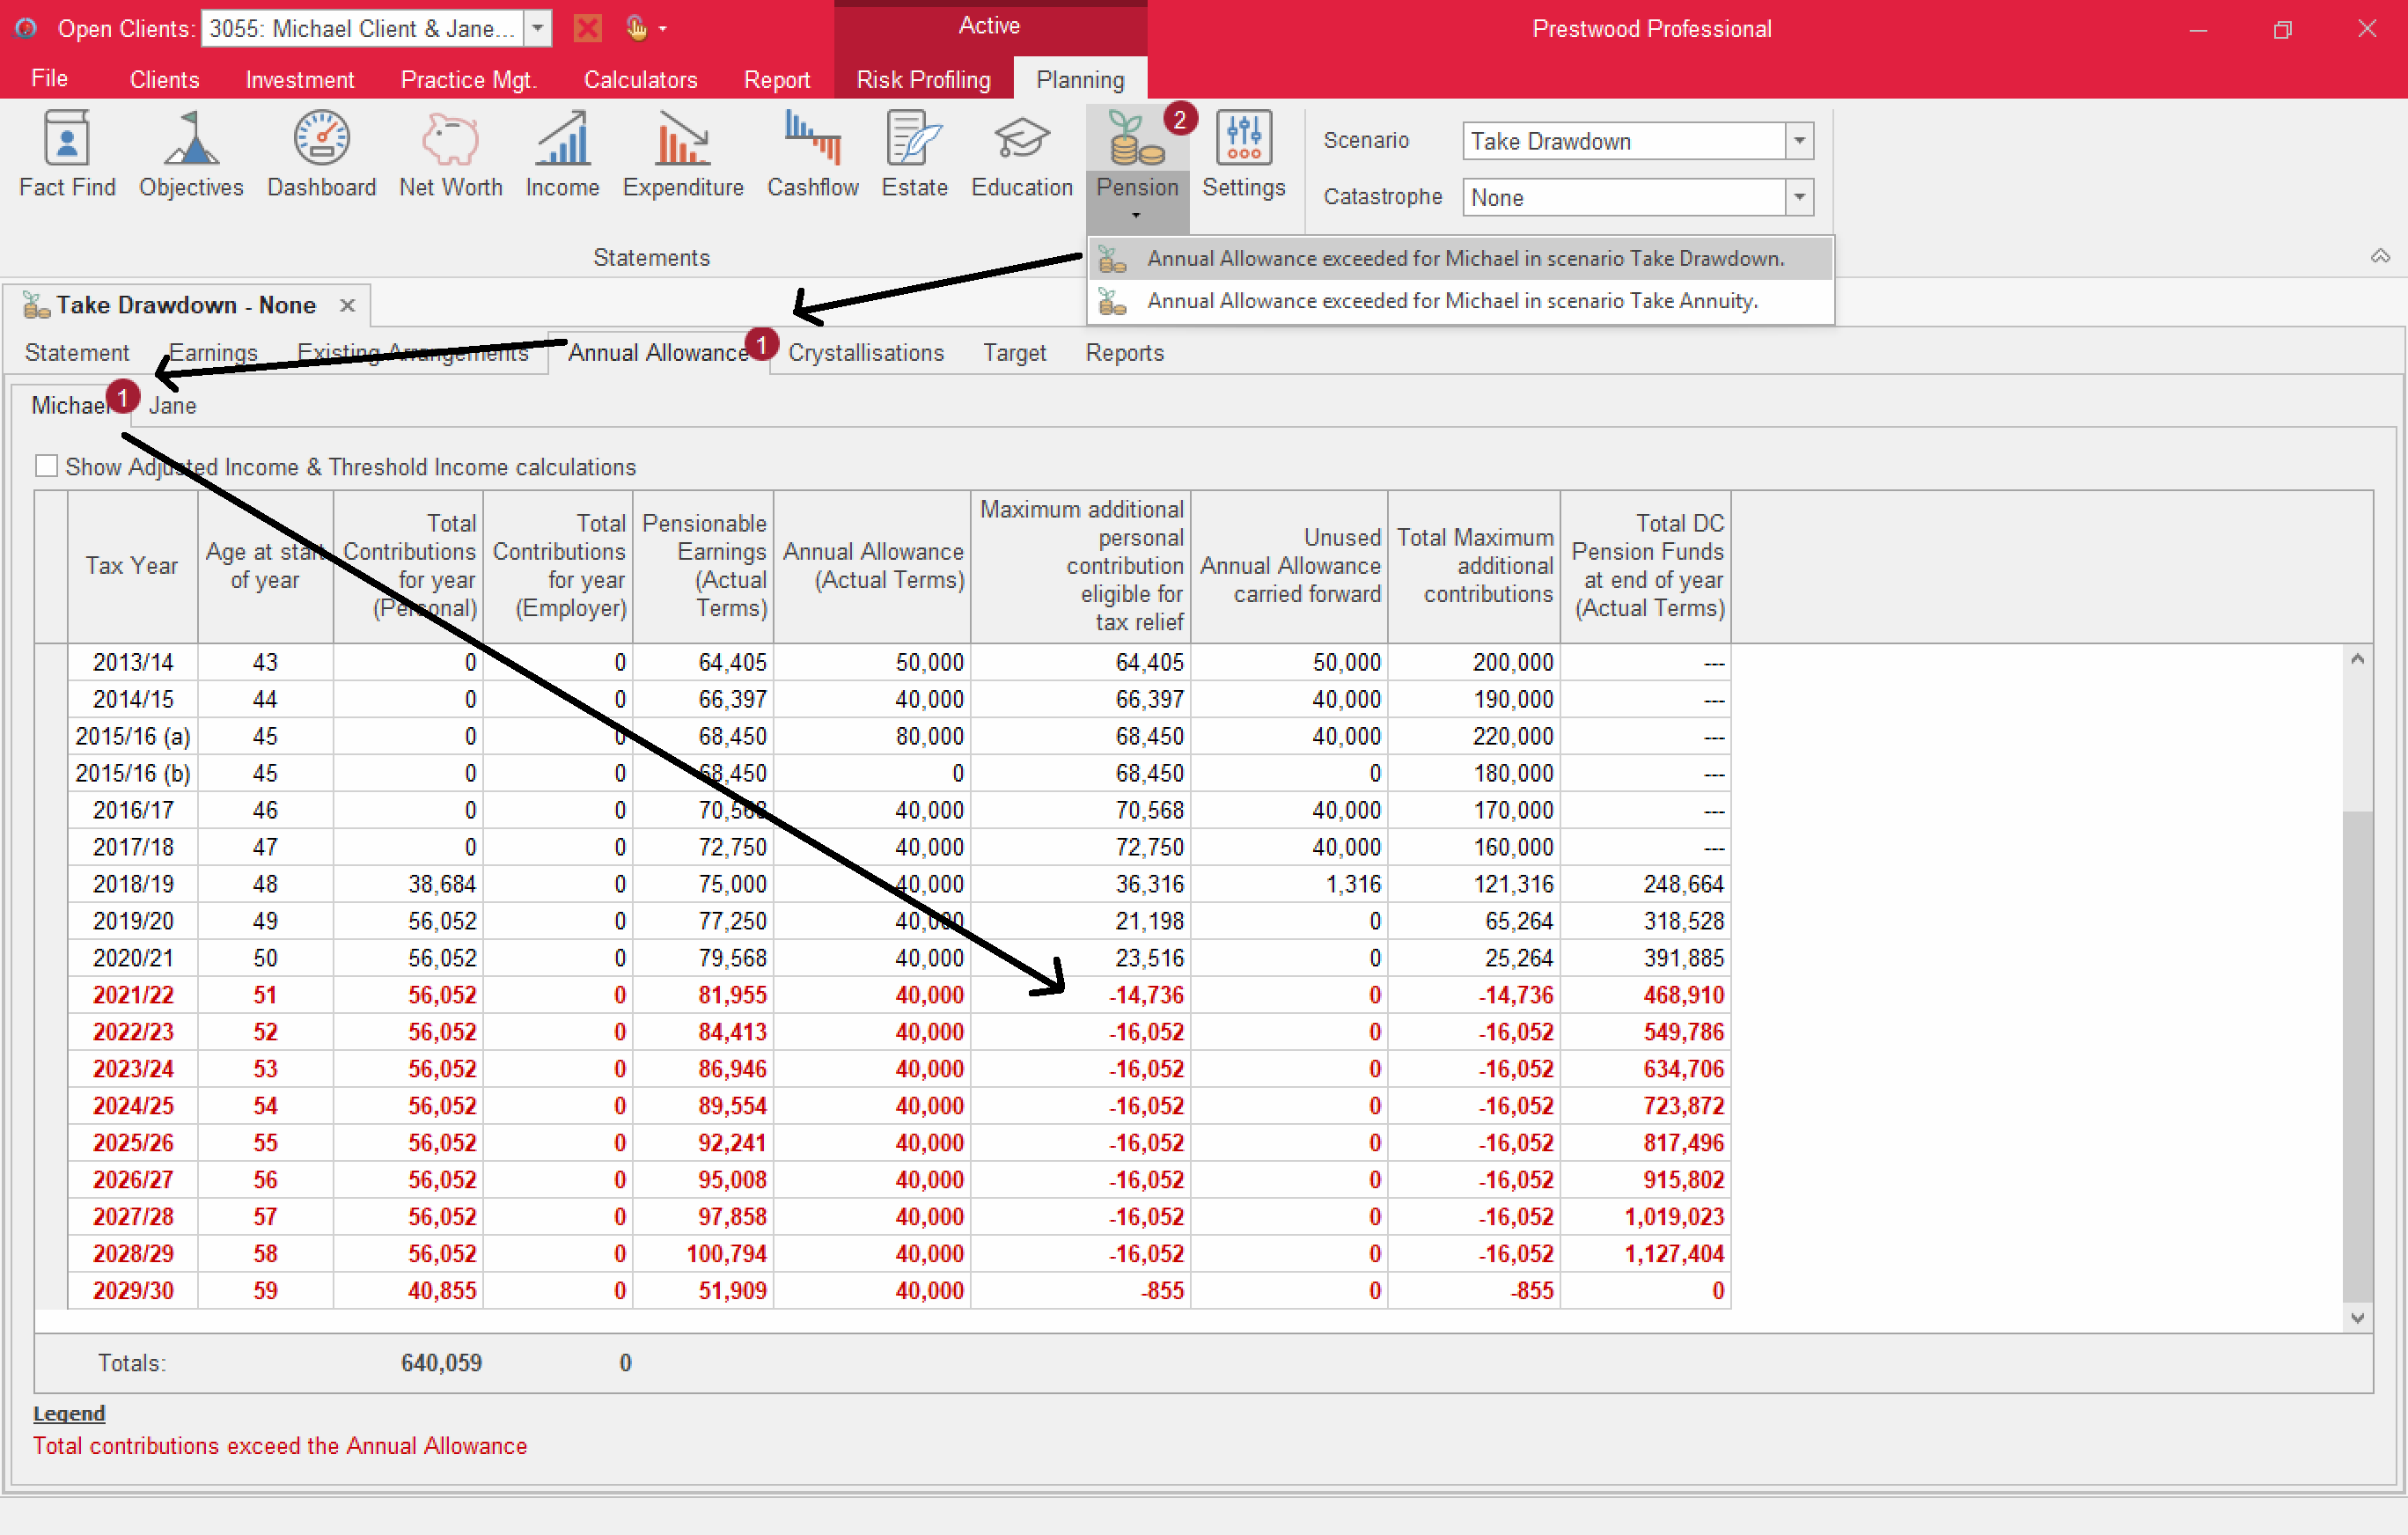 prestwood truth software cashflow release notes pension statement warnings fix tool update